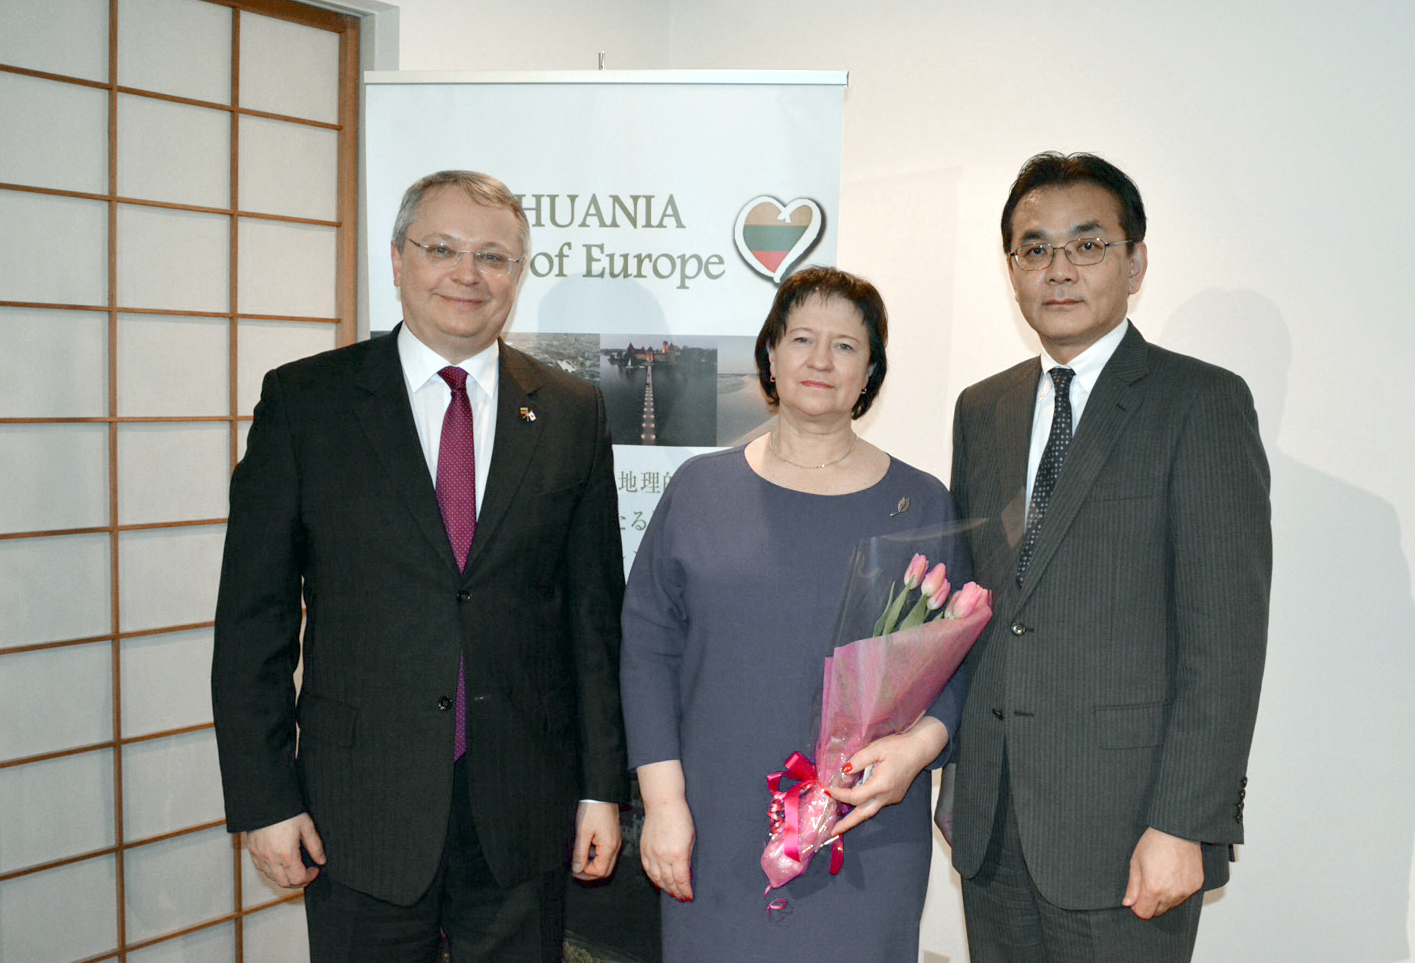 Lithuanian Minister of Agriculture Virginija Baltraitiene (center) poses with Vice Agriculture, Forestry and Fisheries Minister Hiromichi Matsushima (right) and Lithuanian Ambassador Egidijus Meilunas at a presentation promoting Lithuanian agriculture and food products at the Lithuanian Embassy in Tokyo on March 8. | LITHUANIA EMBASSY